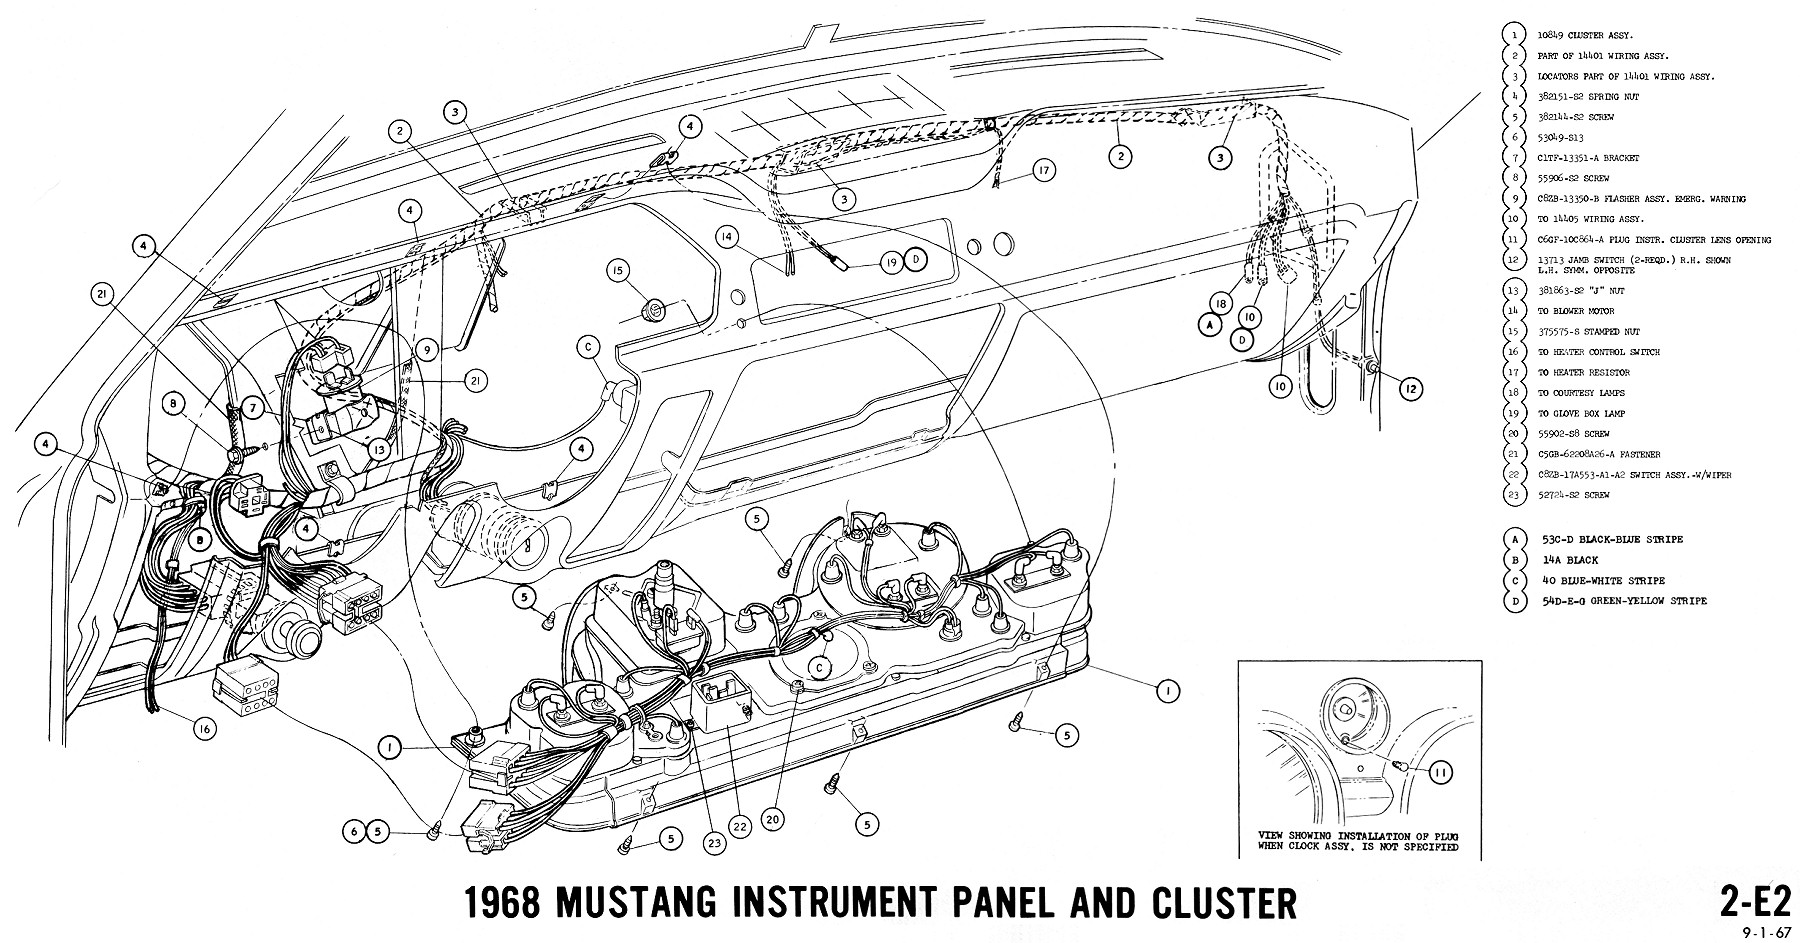 Freightliner Brake Light Wiring Diagram Real 2005 1968 Mustang Diagrams And Vacuum Schematics M2